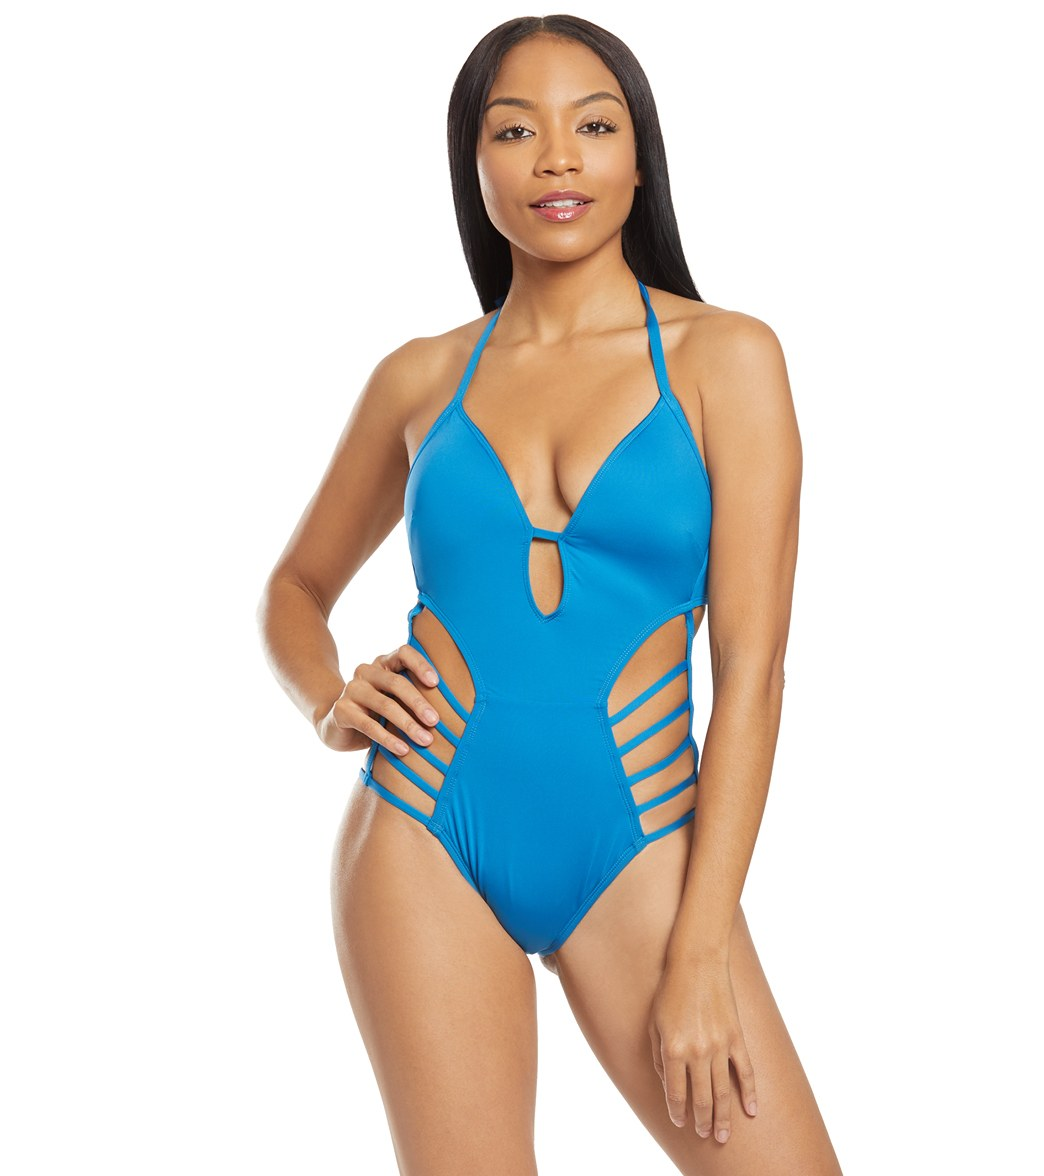 945ceb19425d3 Kenneth Cole Sexy Solid Strappy Plunge One Piece Swimsuit at SwimOutlet.com  - Free Shipping